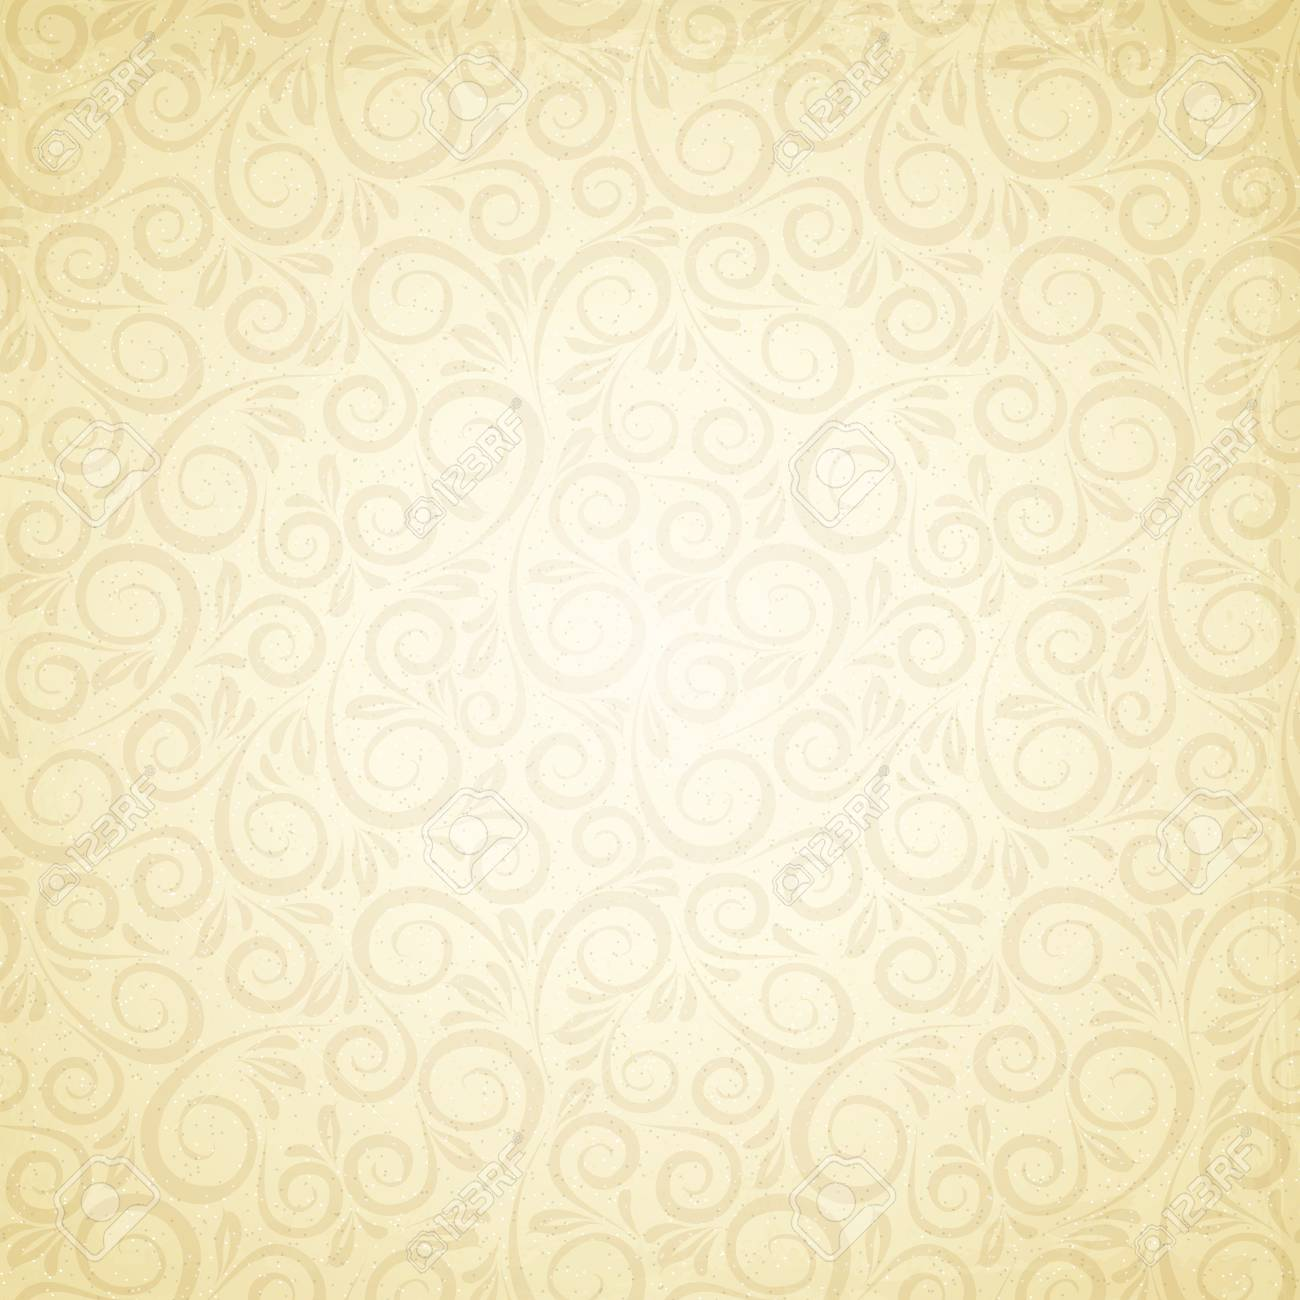 Floral background in vintage style  Vector illustration, eps10, contains transparencies, gradients and effects Stock Vector - 18095935